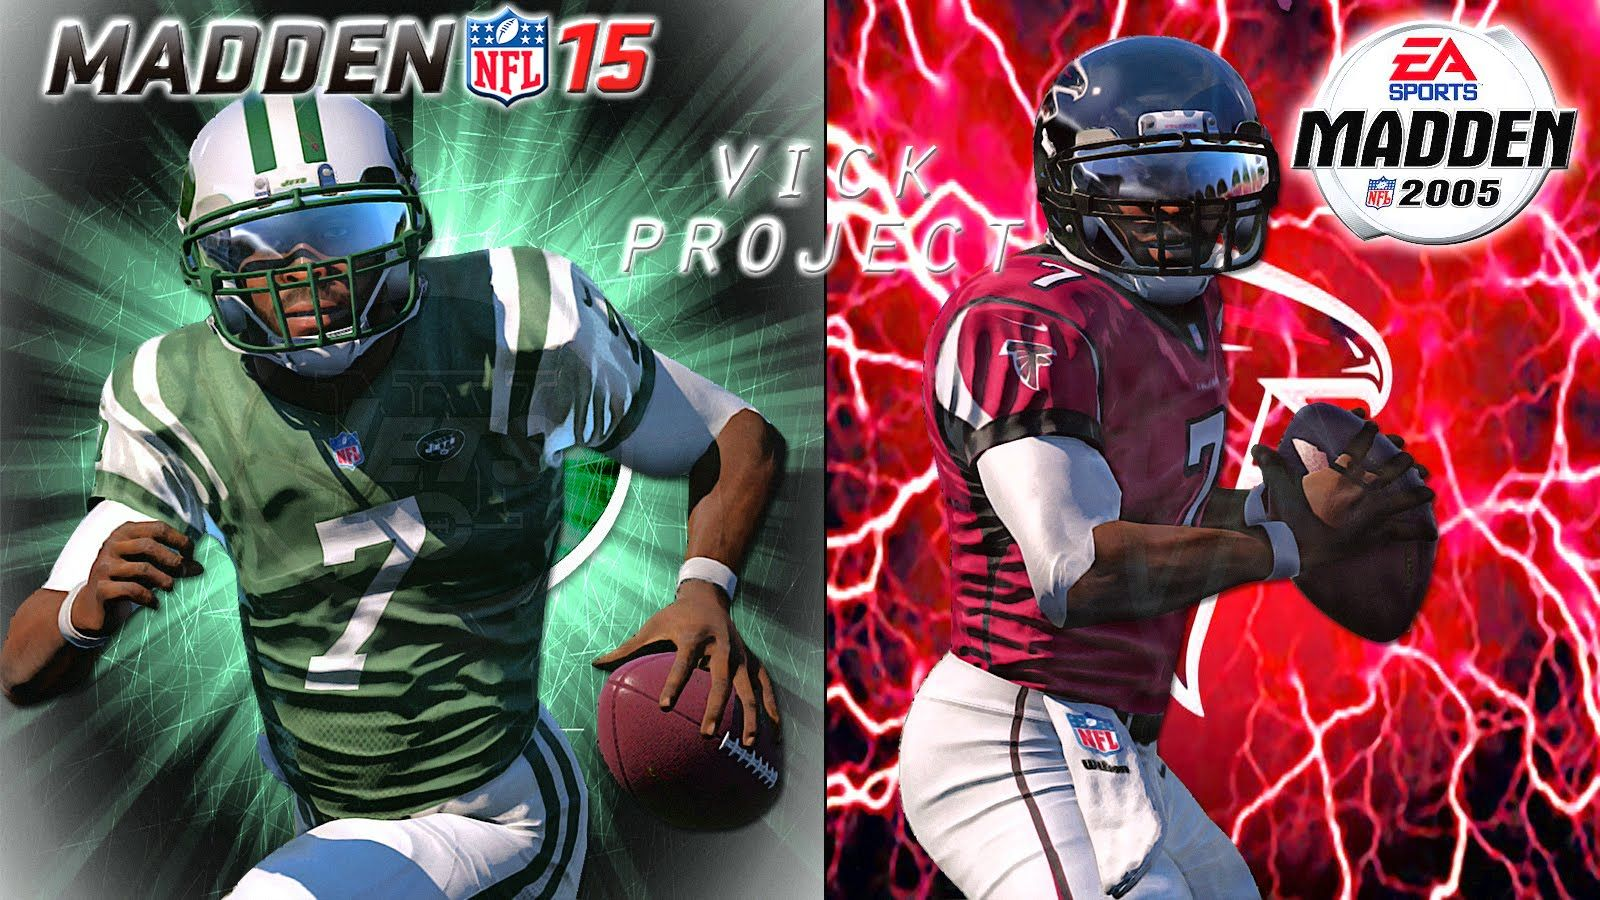 Madden Nfl 15 1080phd Ps4 Mike Vick Is Back Falcons At Jets Mike Vick Madden Nfl Nfl